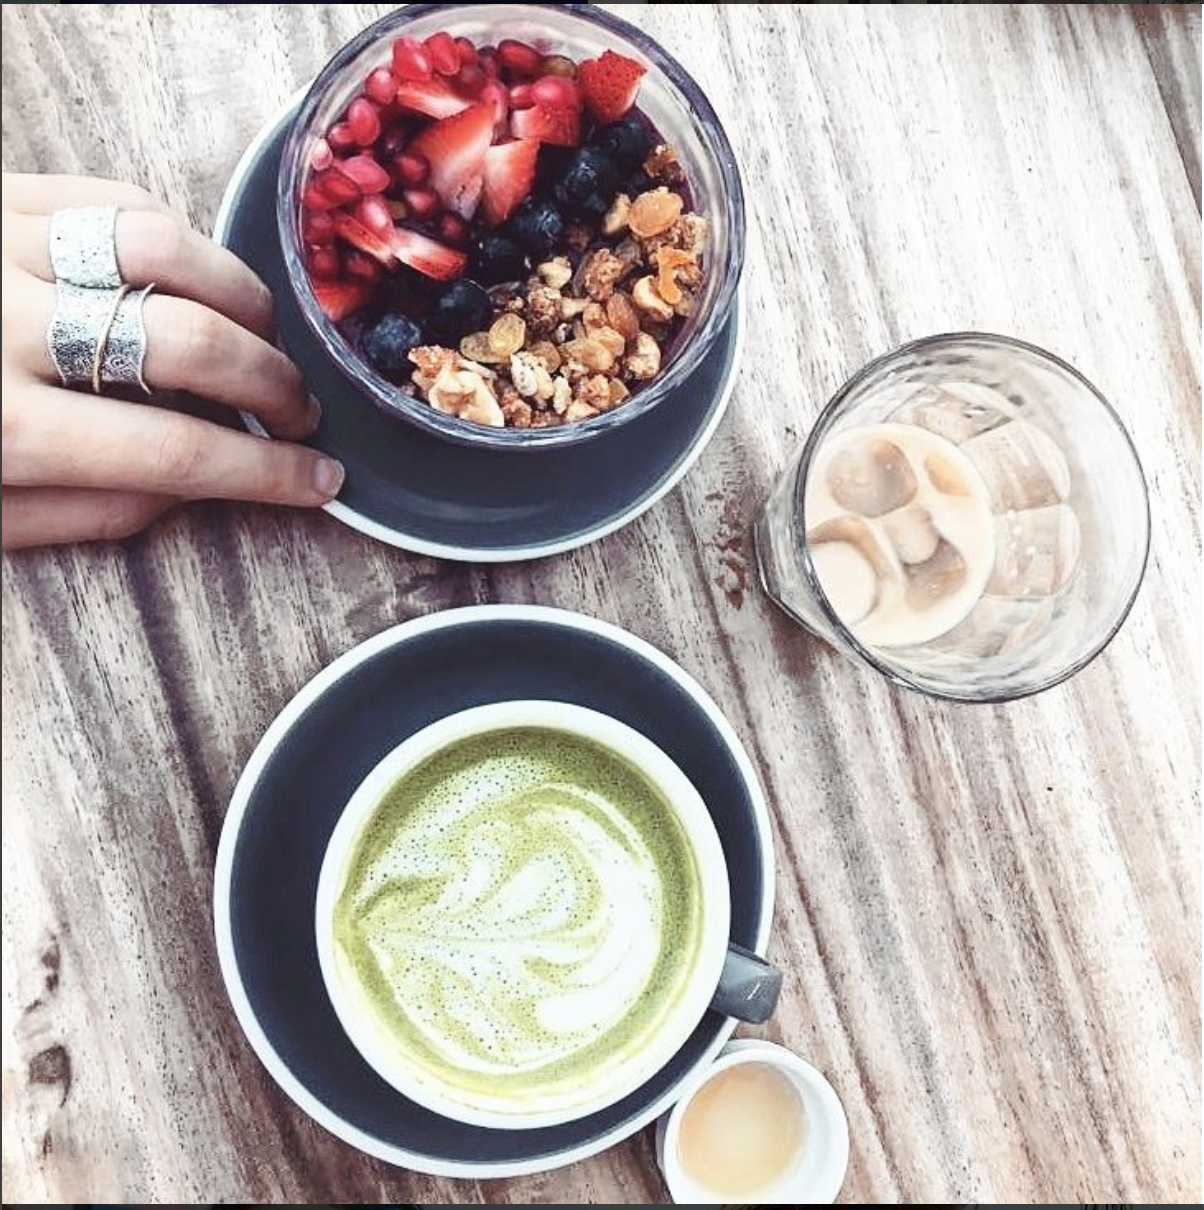 matcha latte, soy iced coffee and Stomping Grounds Dubai acai bowl with strawberries, fruit and granola on minimalist wooden background